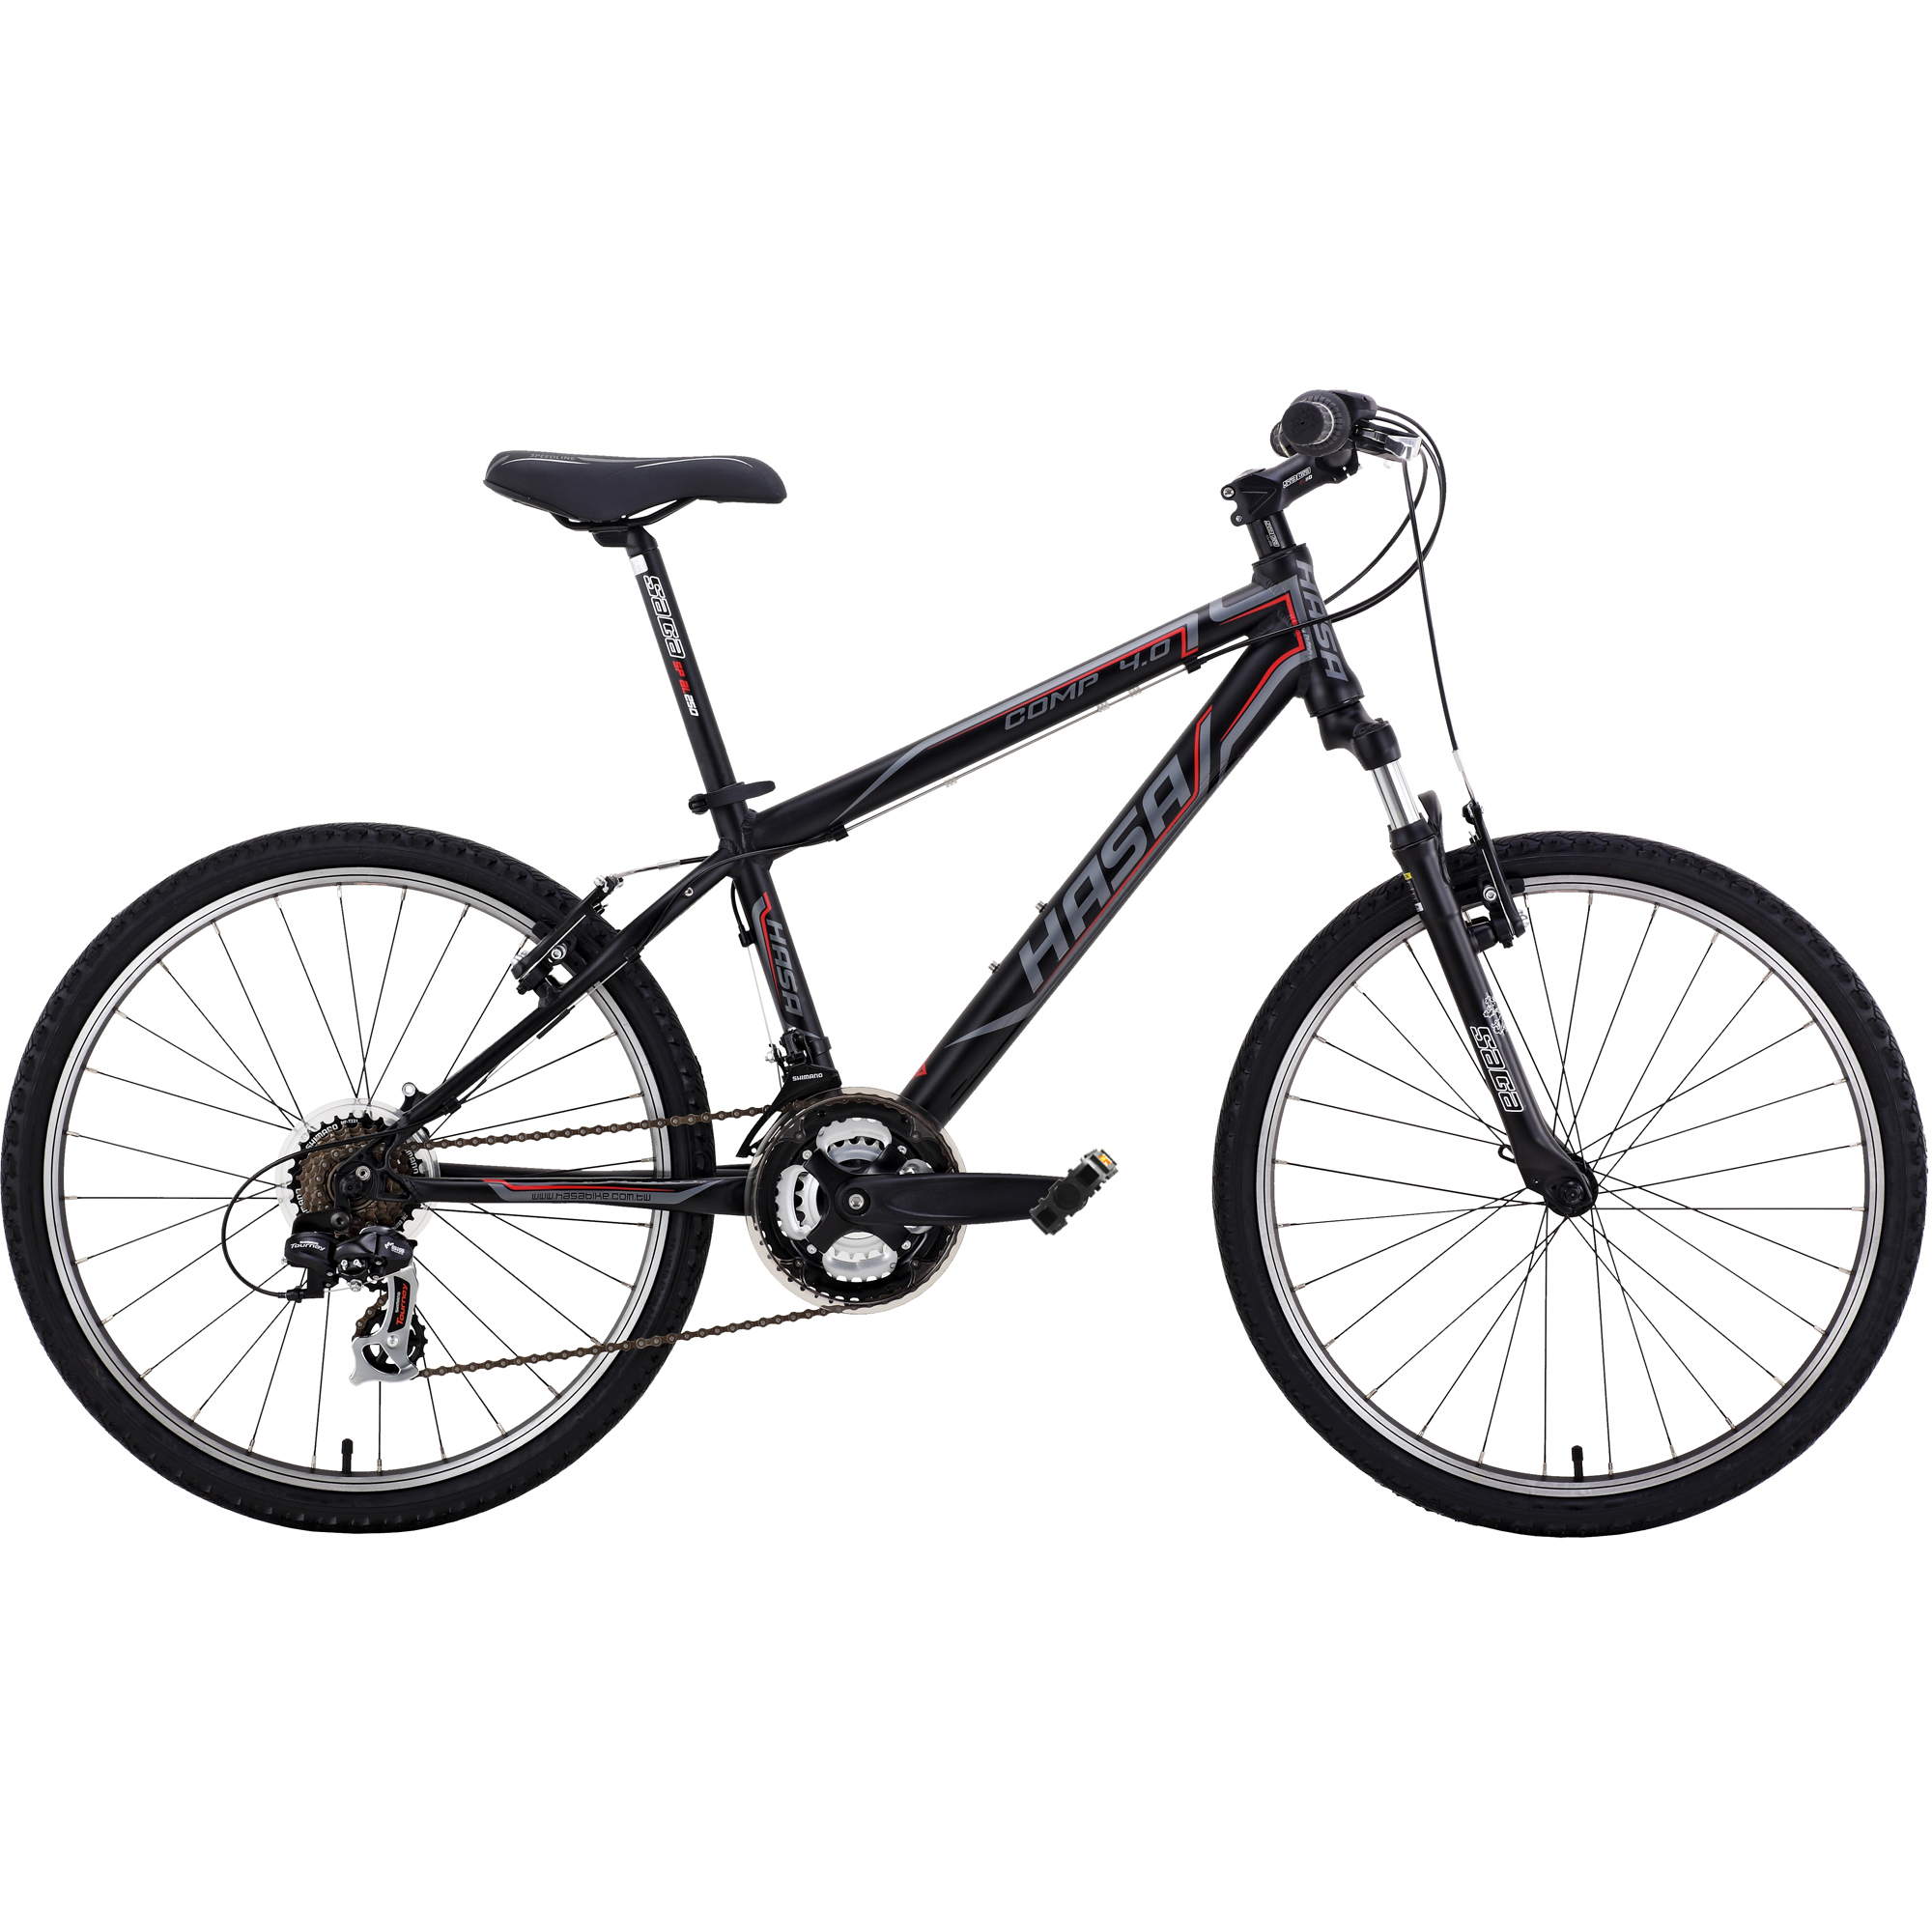 Click here to buy HASA Kids Mountain Bike Shimano 21 Speed 24 inch Alloy by HASA.